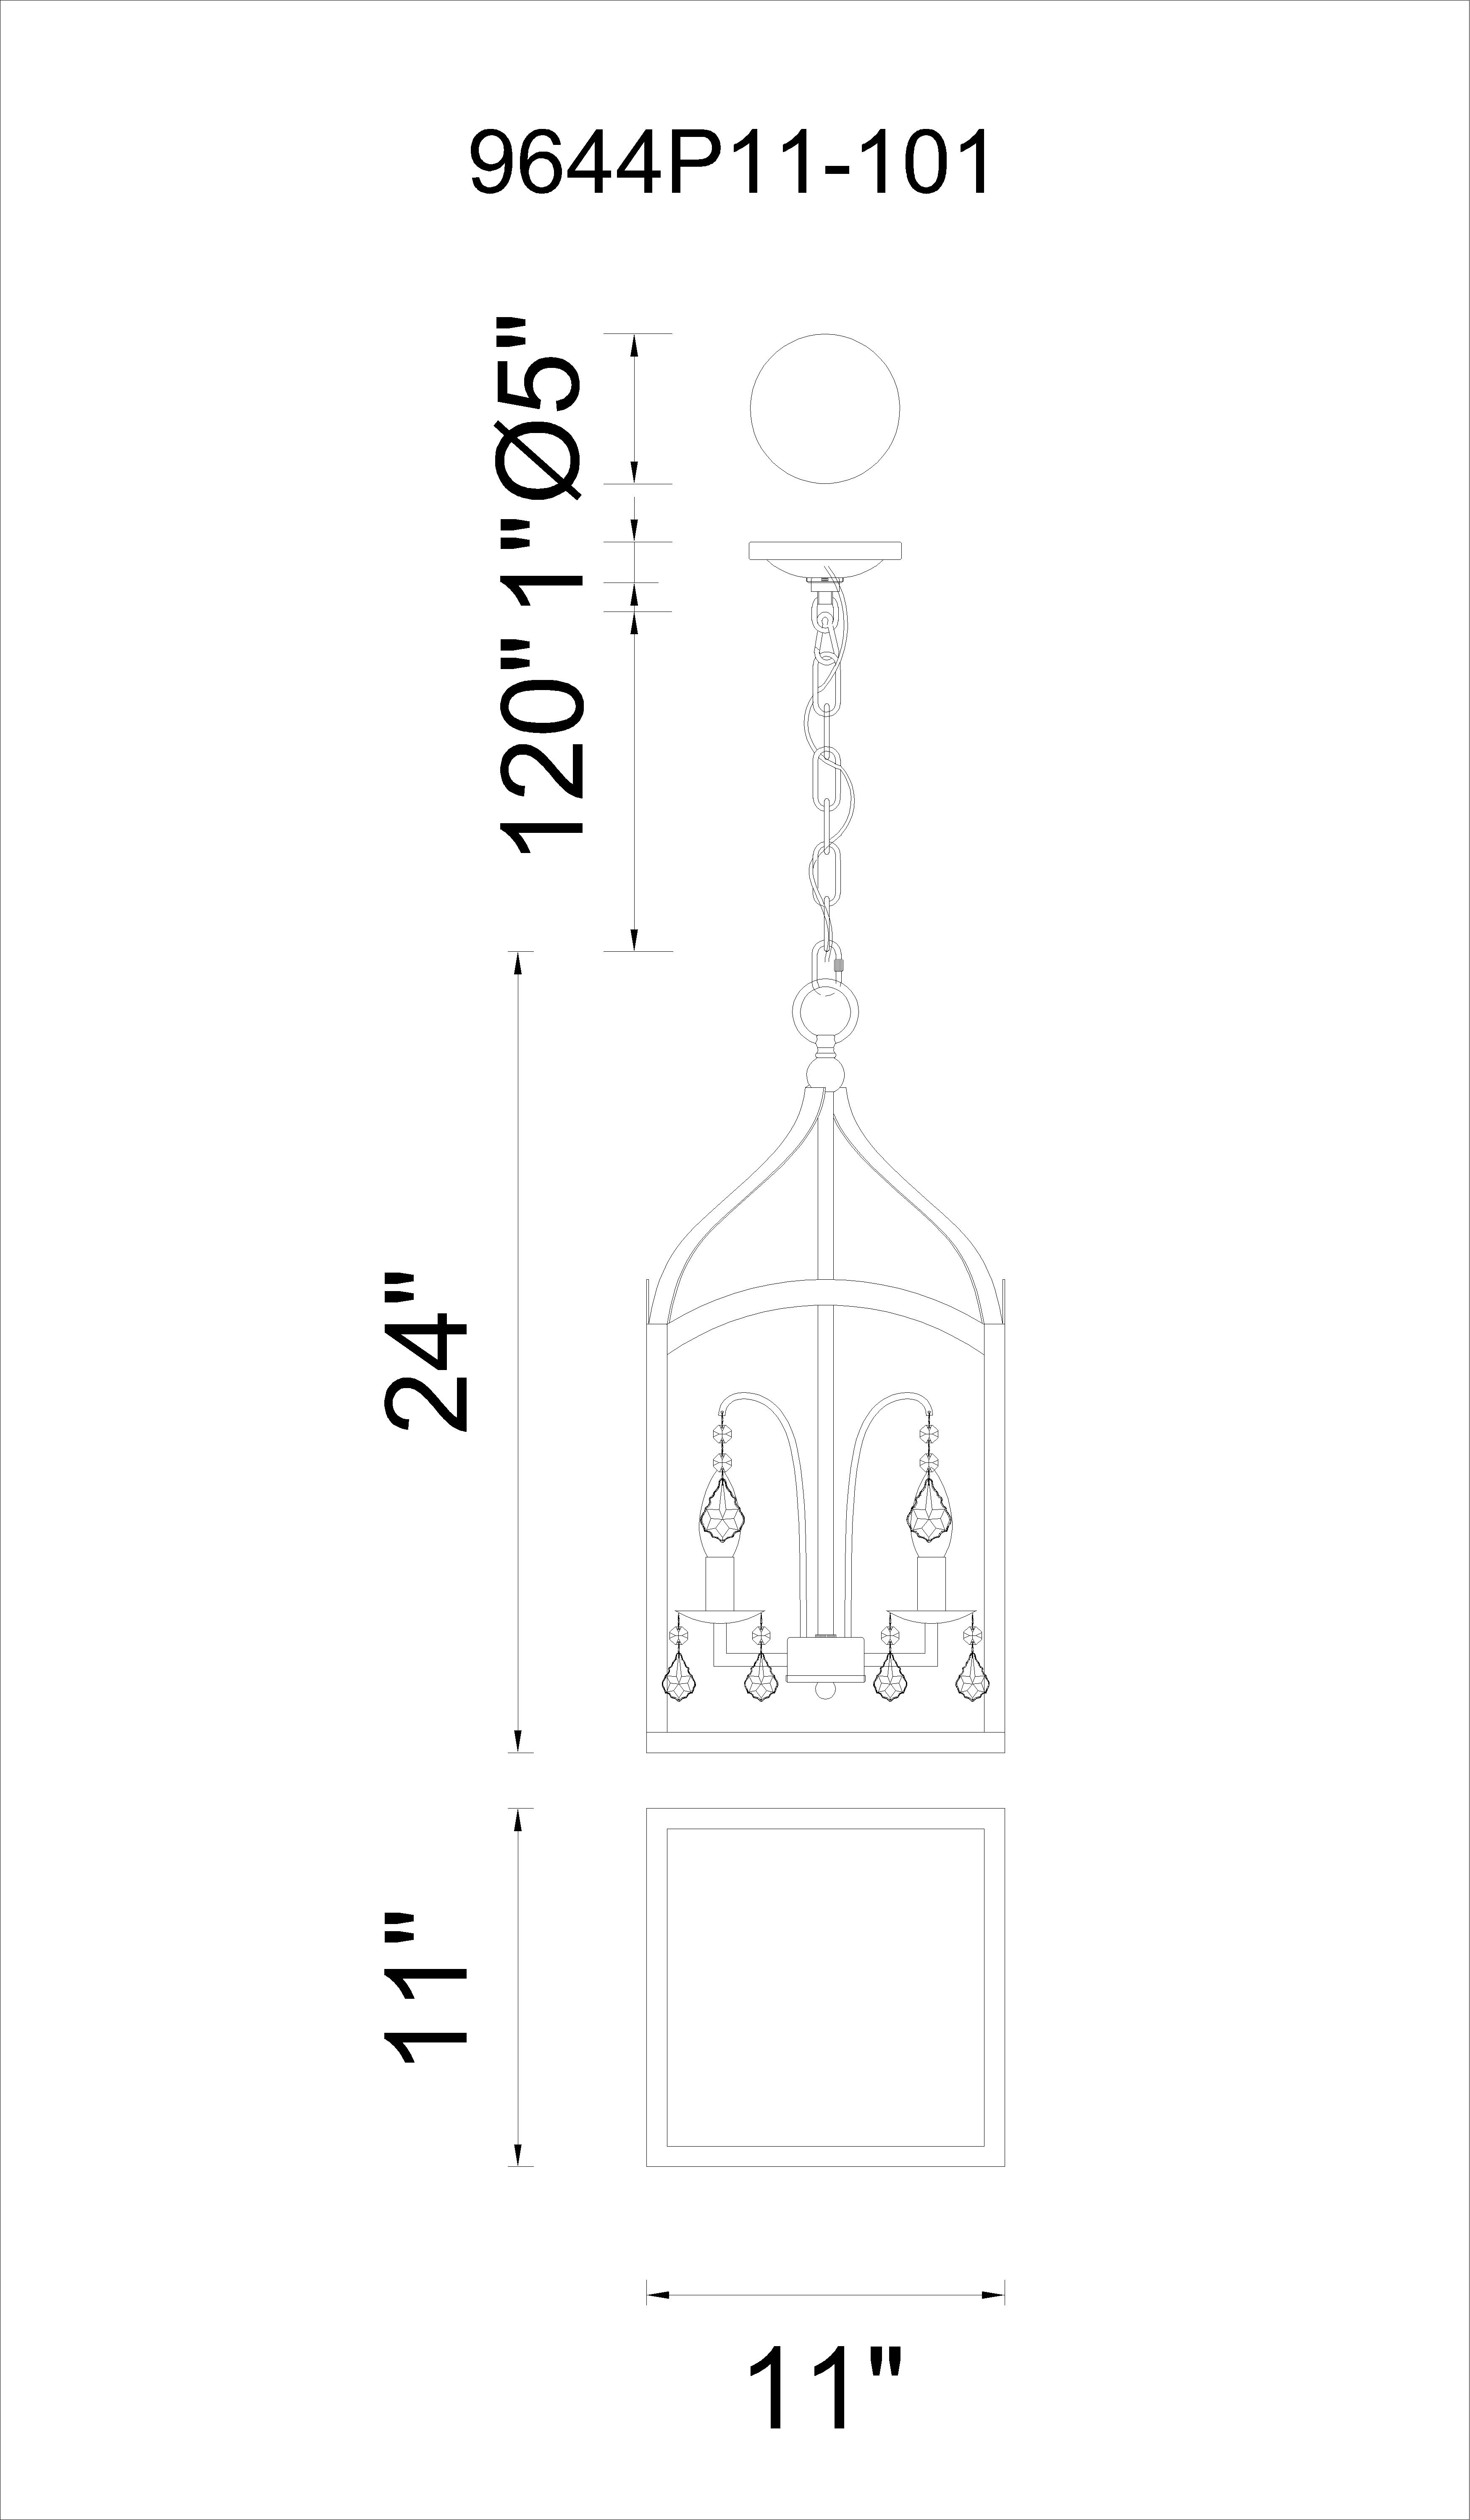 CWI Lighting Save 3 Light Up Chandelier With Black Finish Model: 9644P11-3-101 Line Drawing